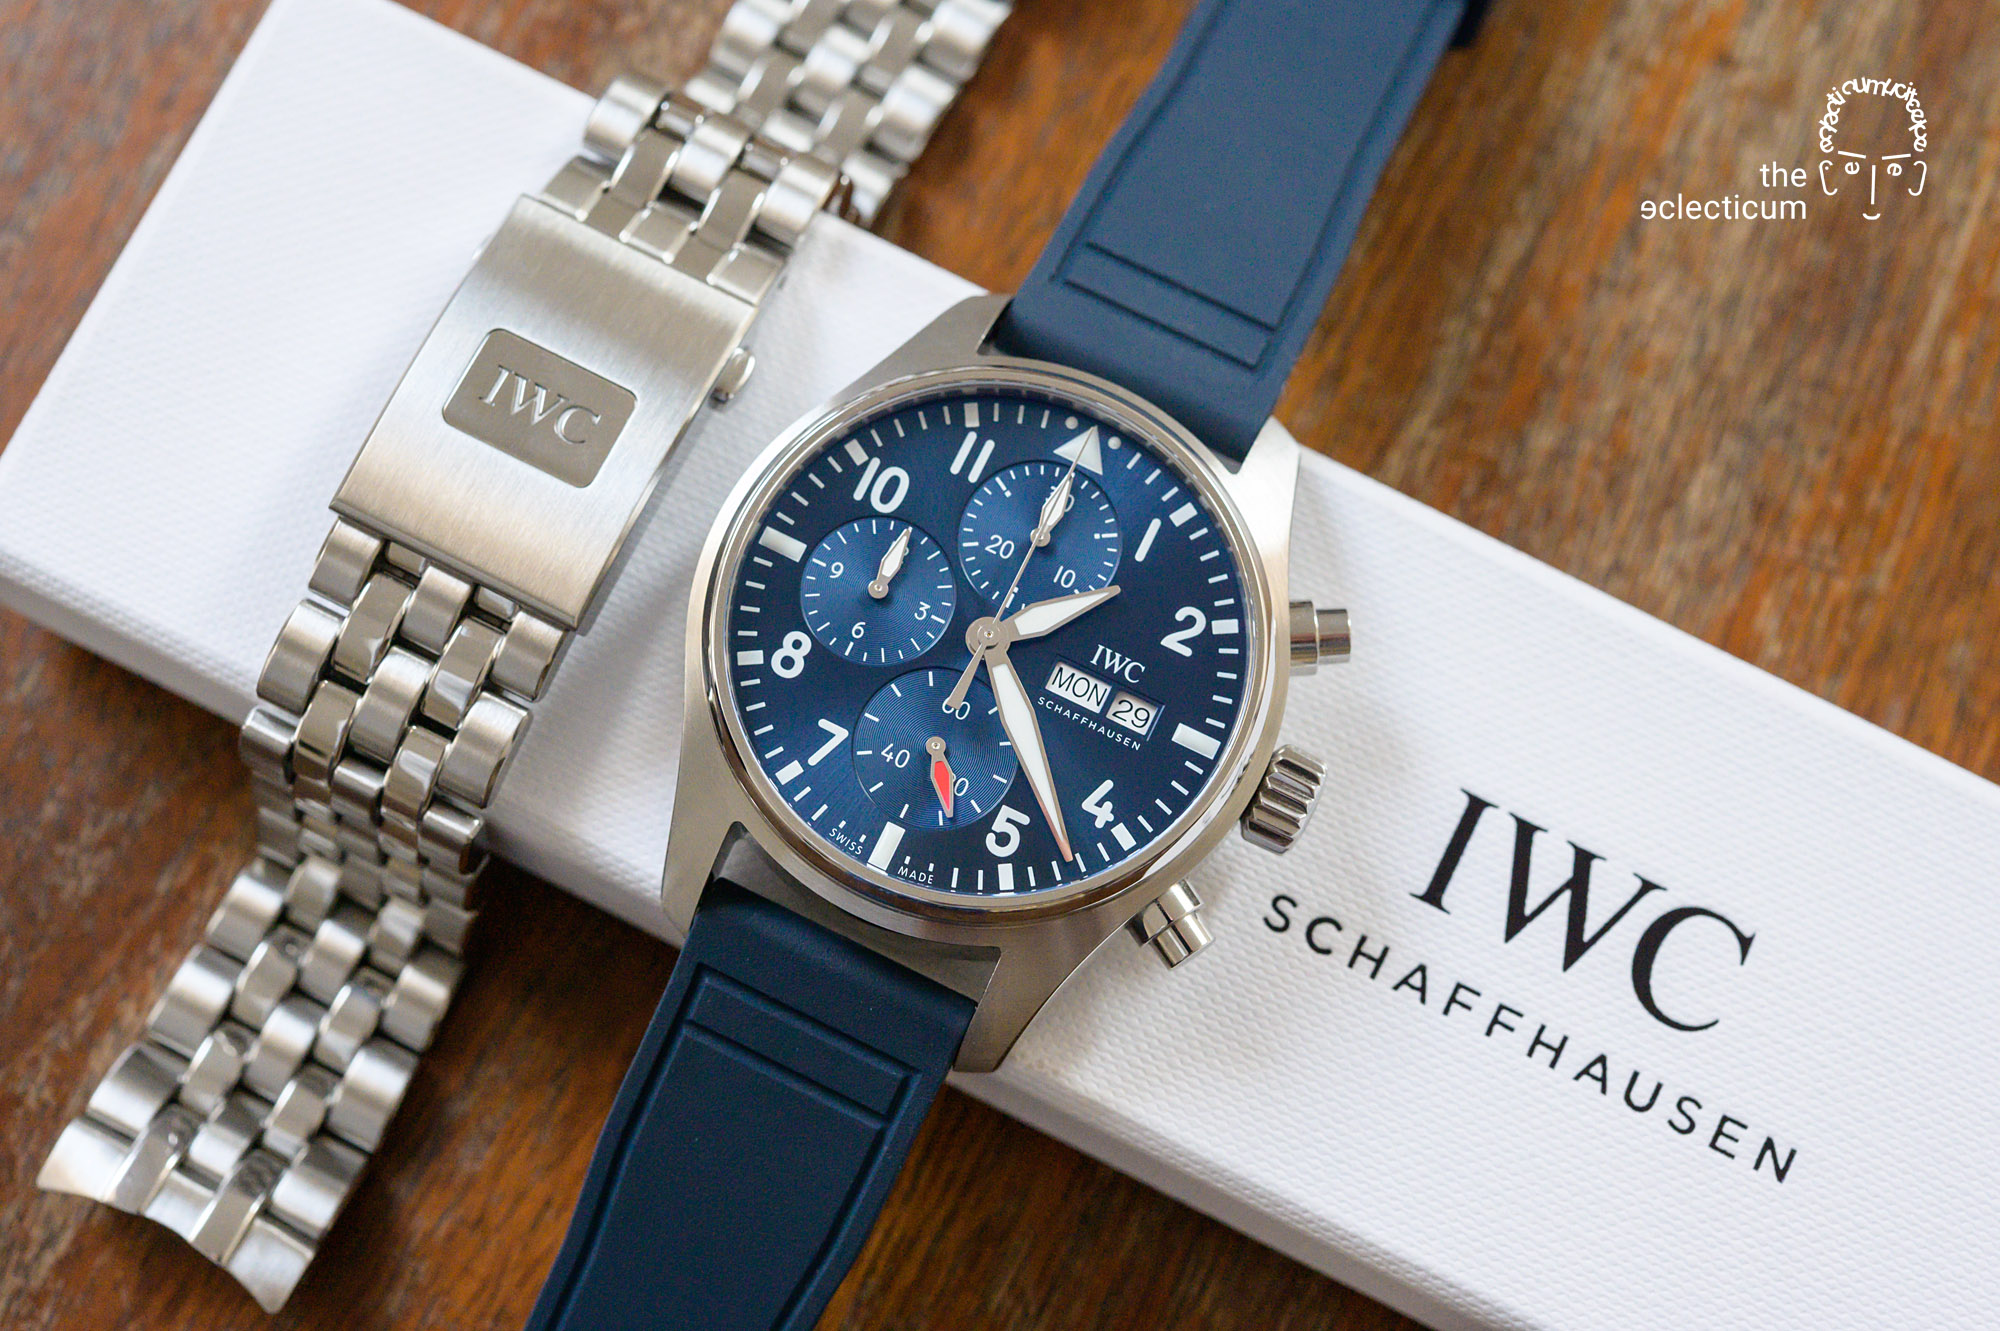 IWC Pilot's Chronograph 41mm automatic 3881 chronograph in-house